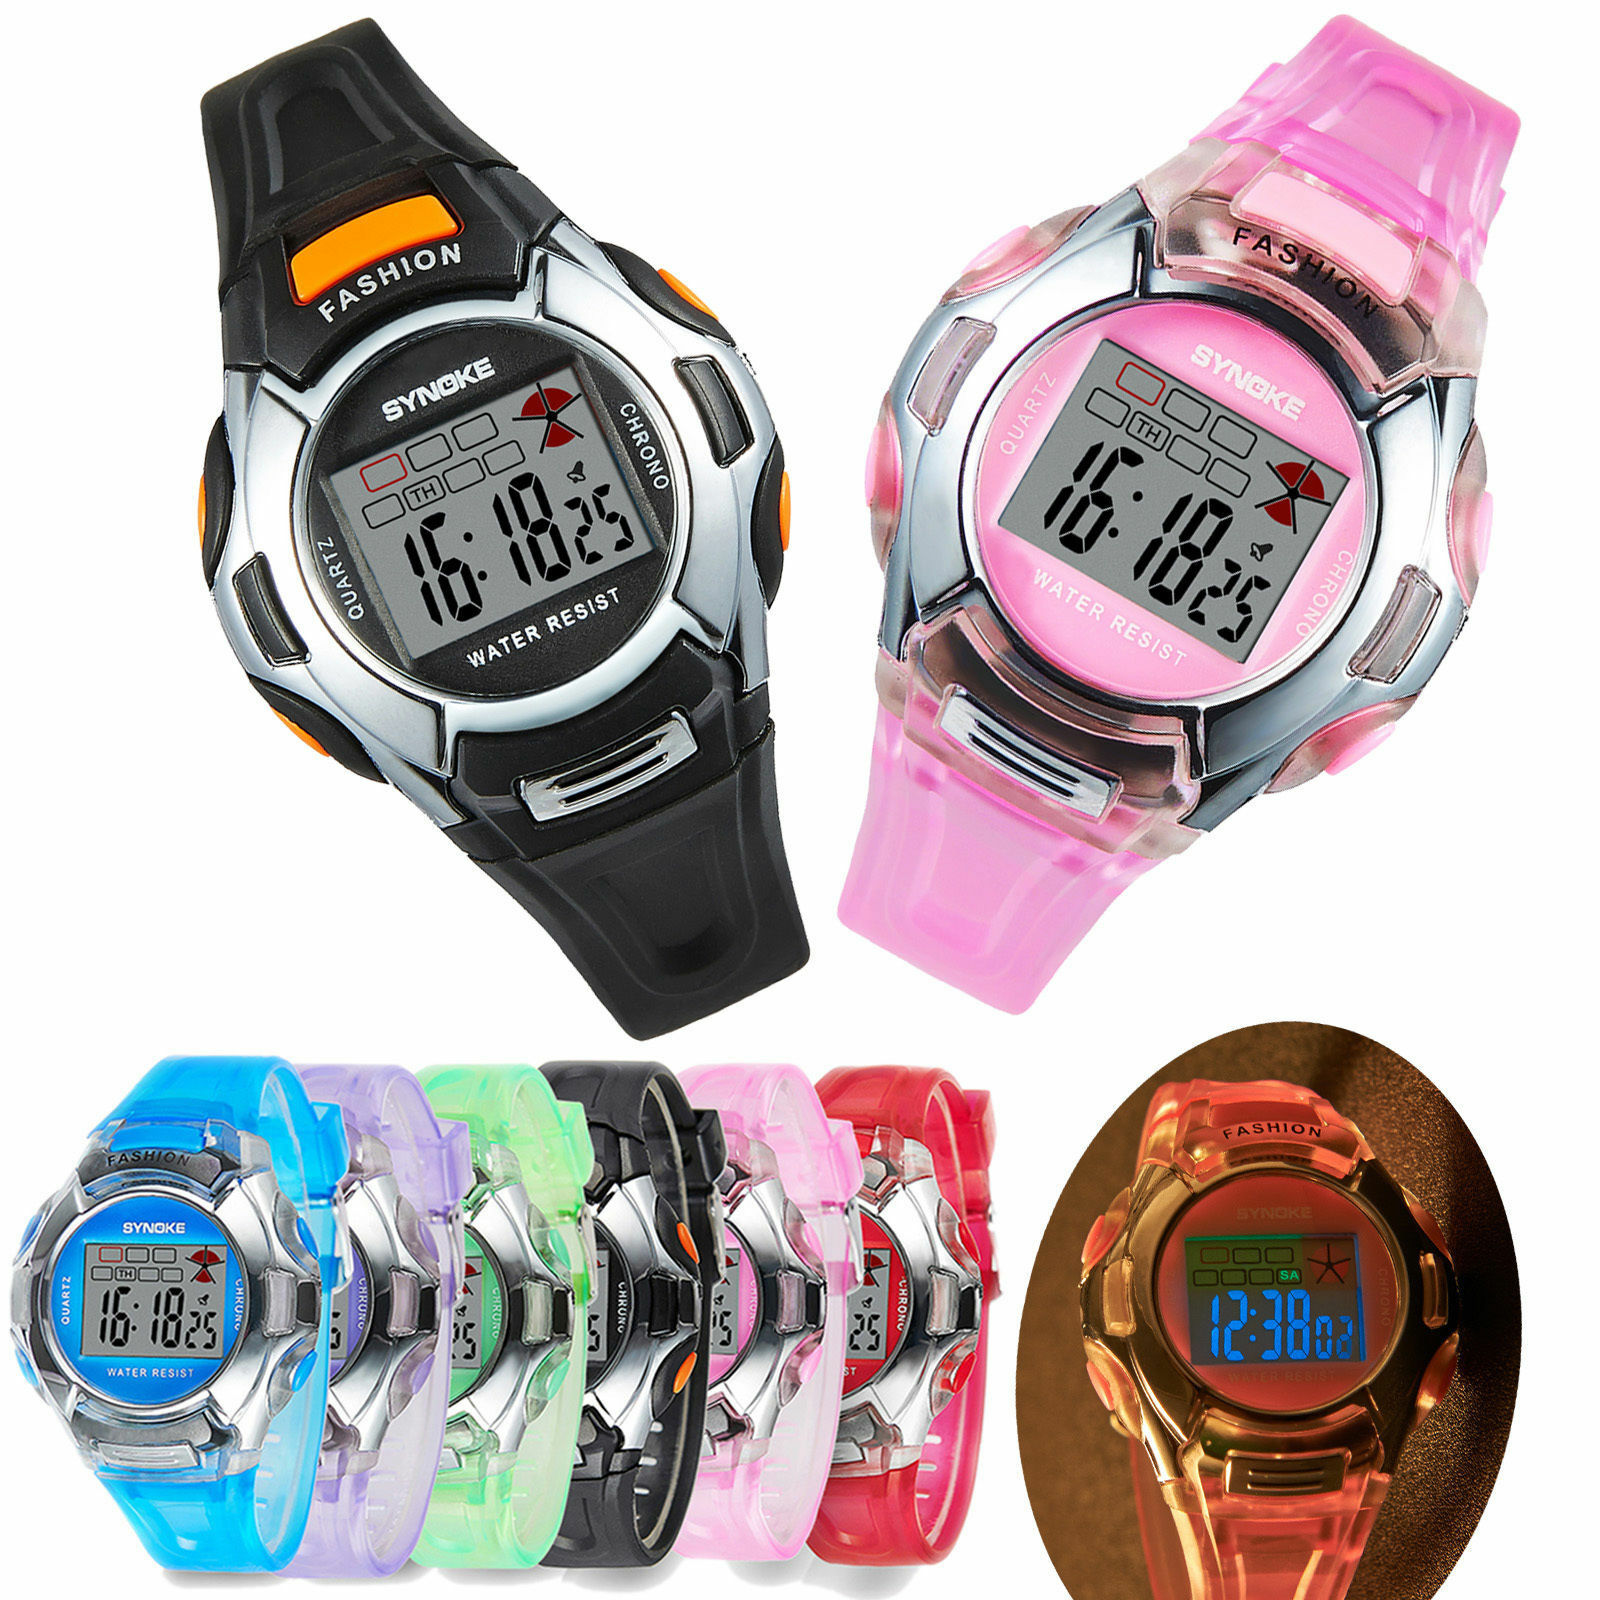 LED Digital Electronic Multifunction Waterproof Child Kids Boy's Girl's Watch US Jewelry & Watches